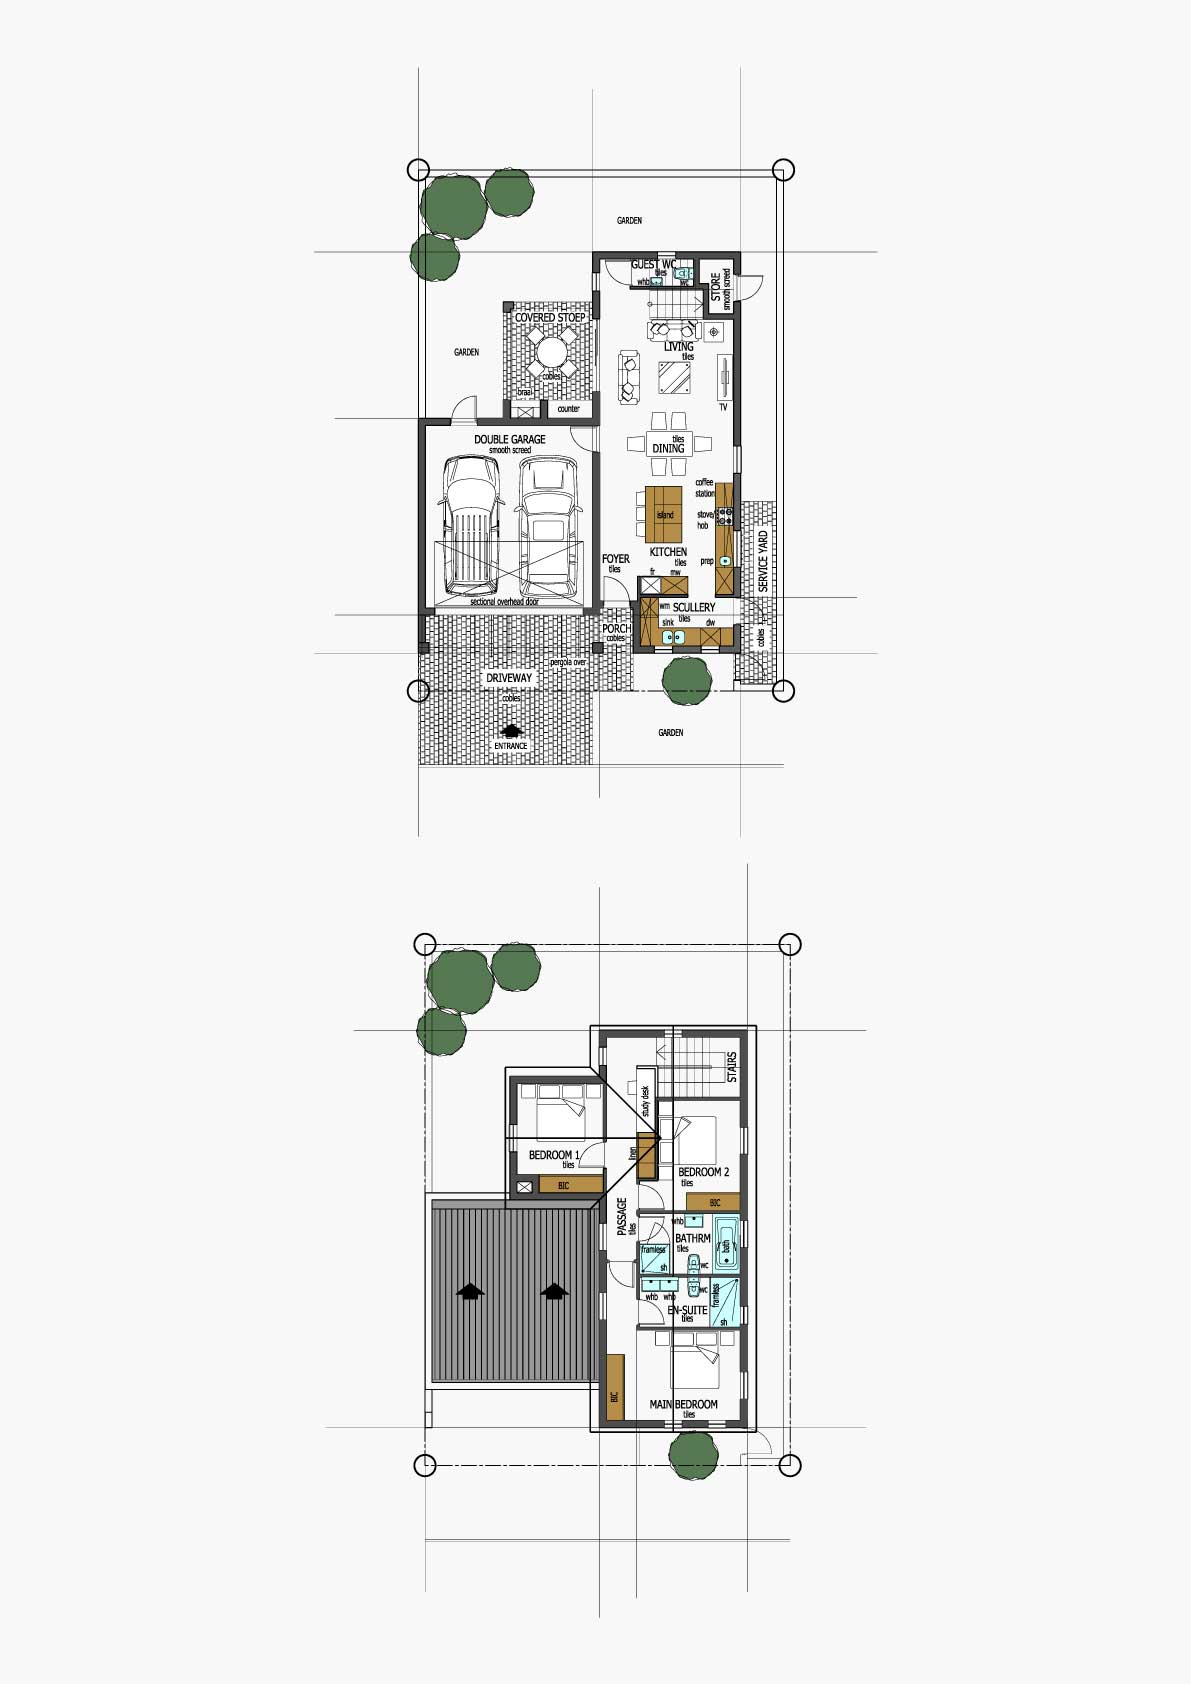 Homes Unit Layout - Type G